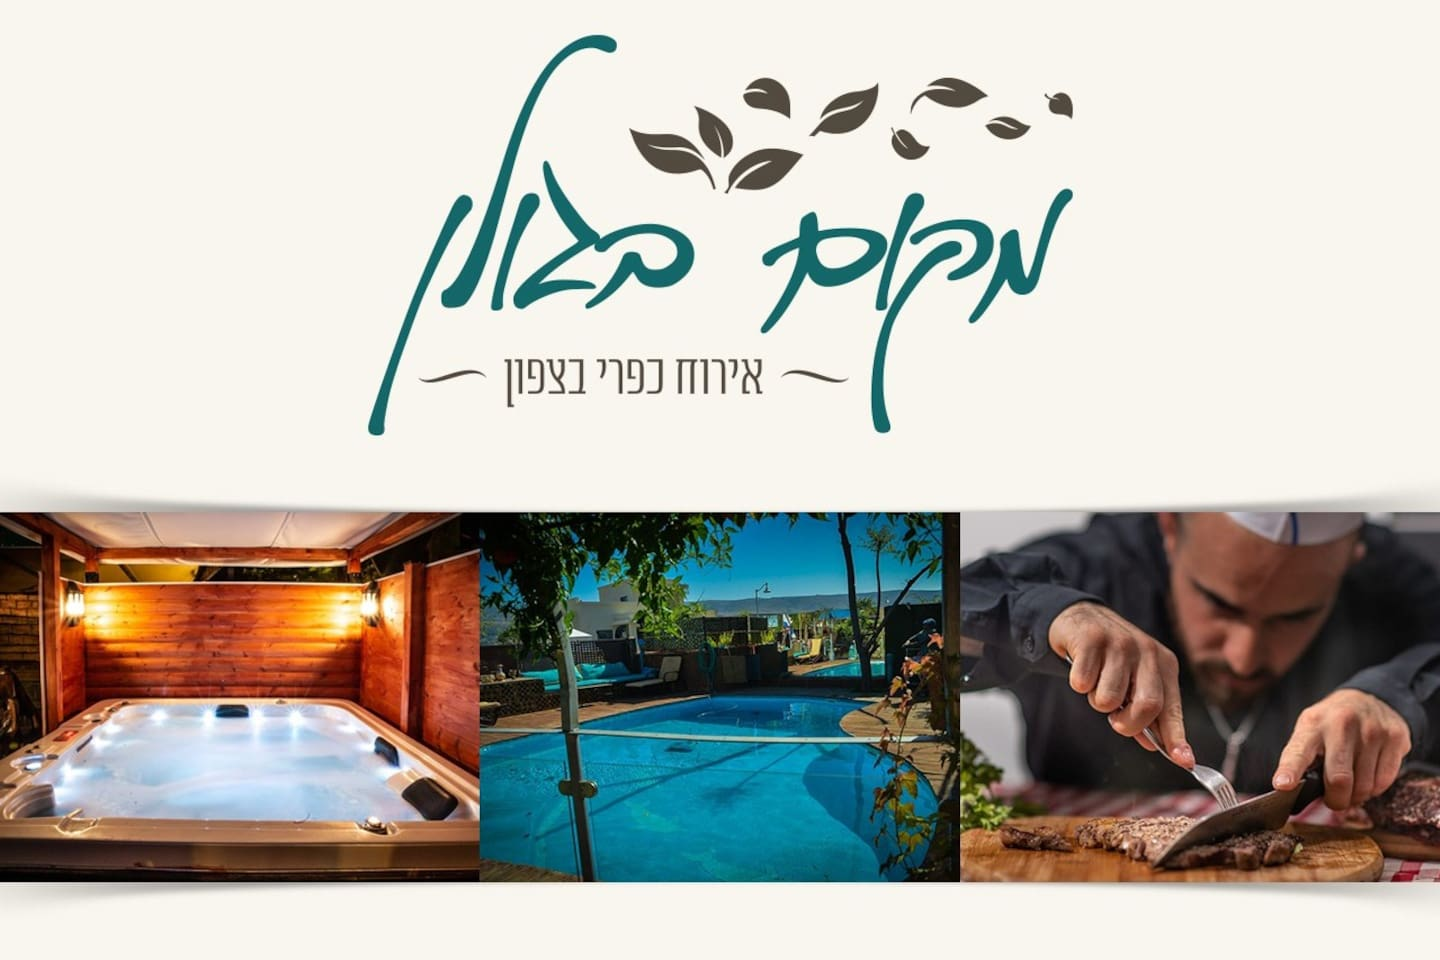 Welcome to makom bagolan. Guest rooms in rustic atmosphere. After 5 years of experience with lots of customers. We discovered the formula of how to make our guests get the best vacation experience. From a hot tab, a large pool, private rooms, to a pampering double massage, and even a private chef.